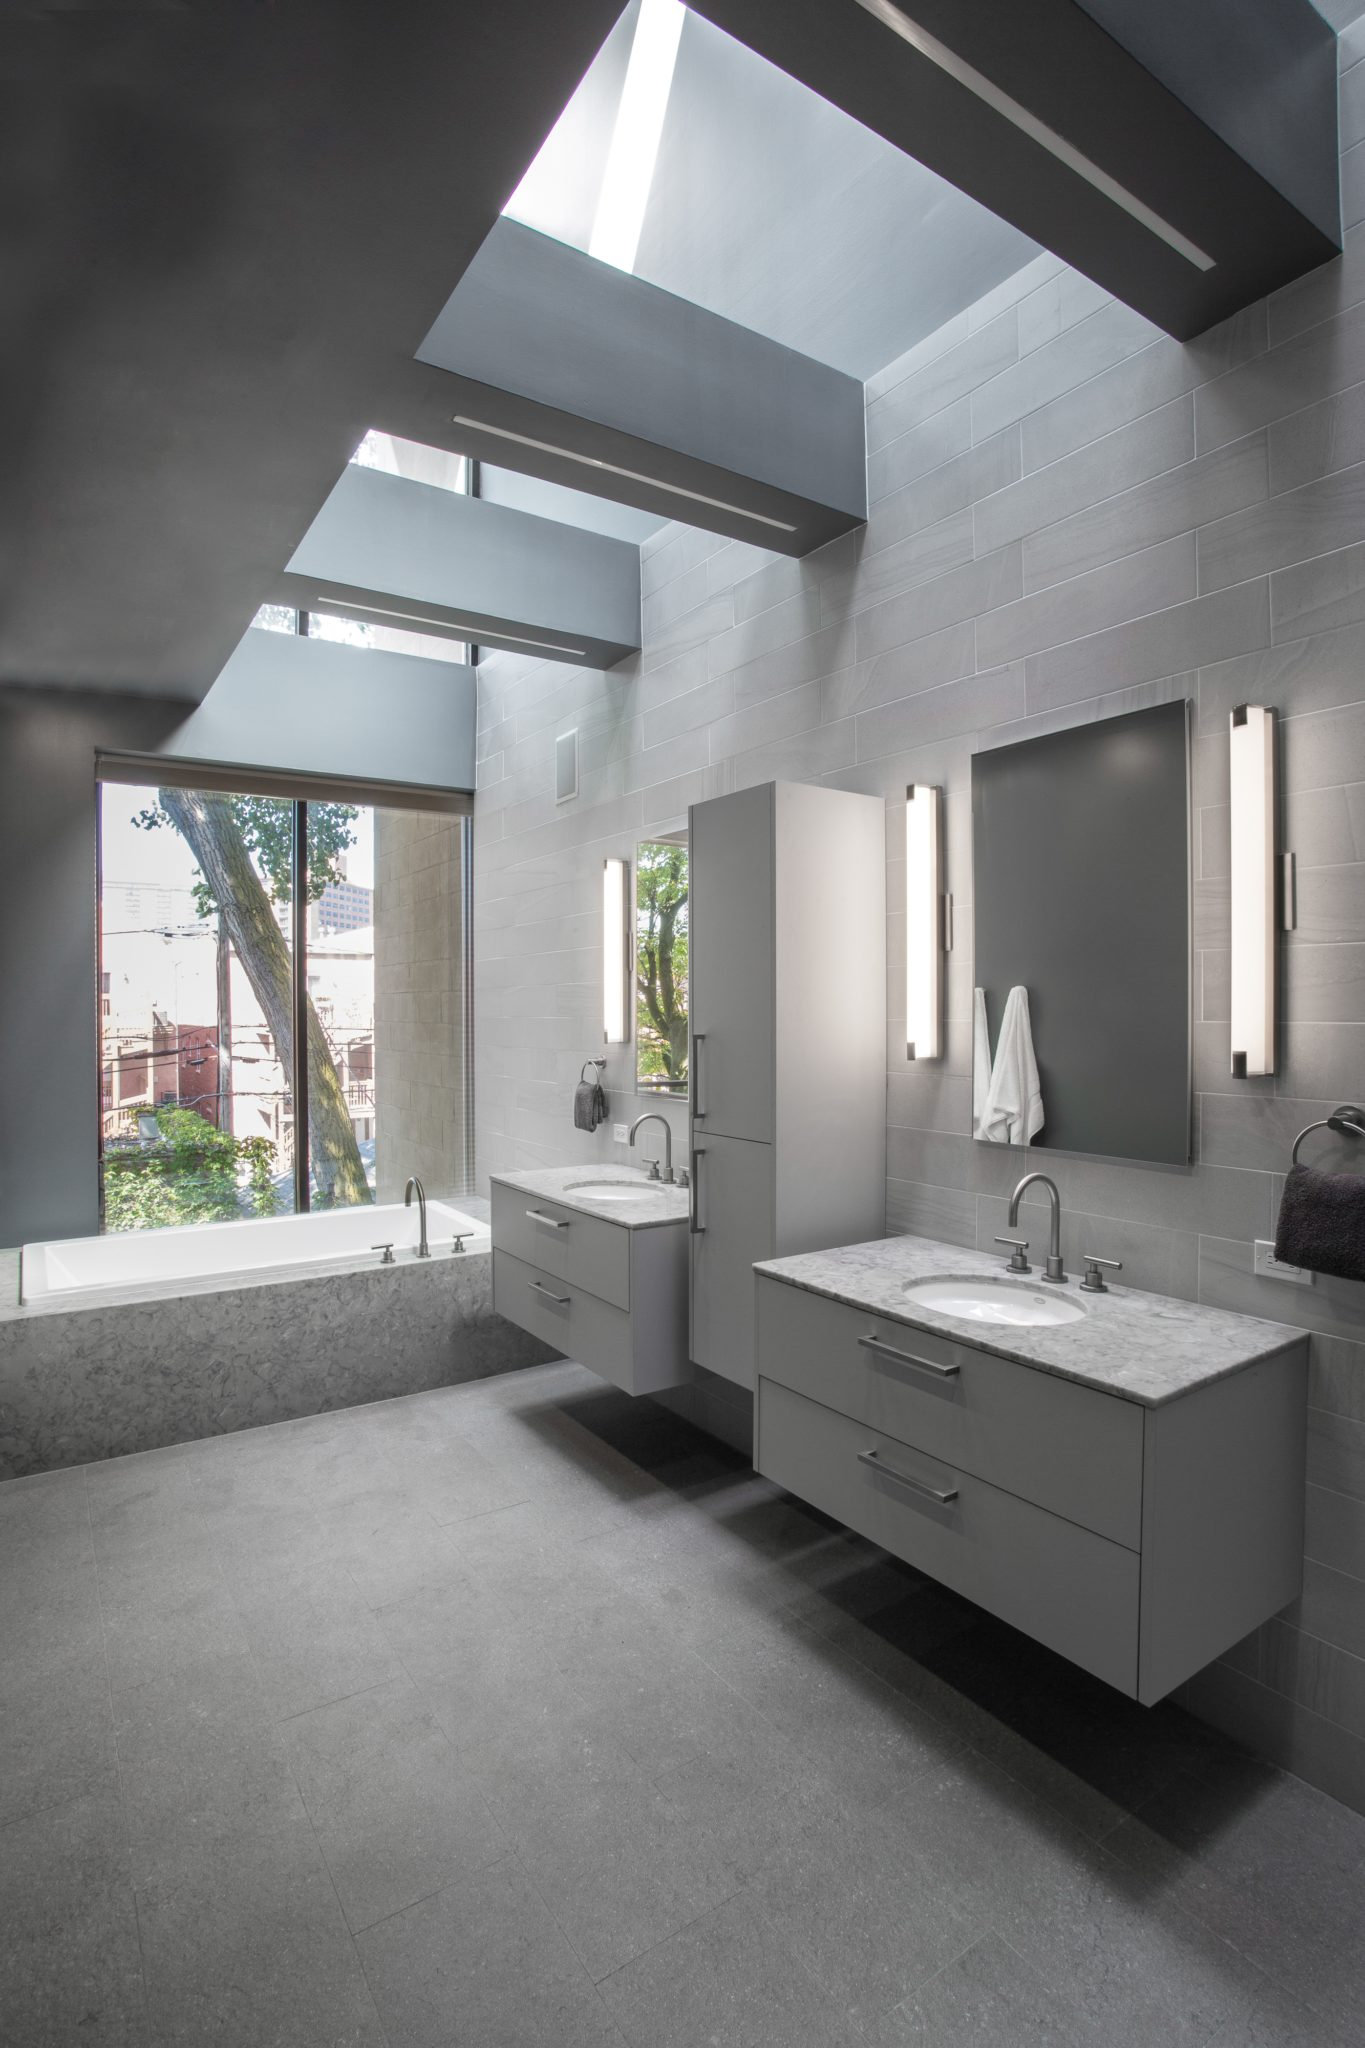 Luxury Old Town Chicago Modern Bathroom with large soaking tub by Nicholas Moriarty Interiors